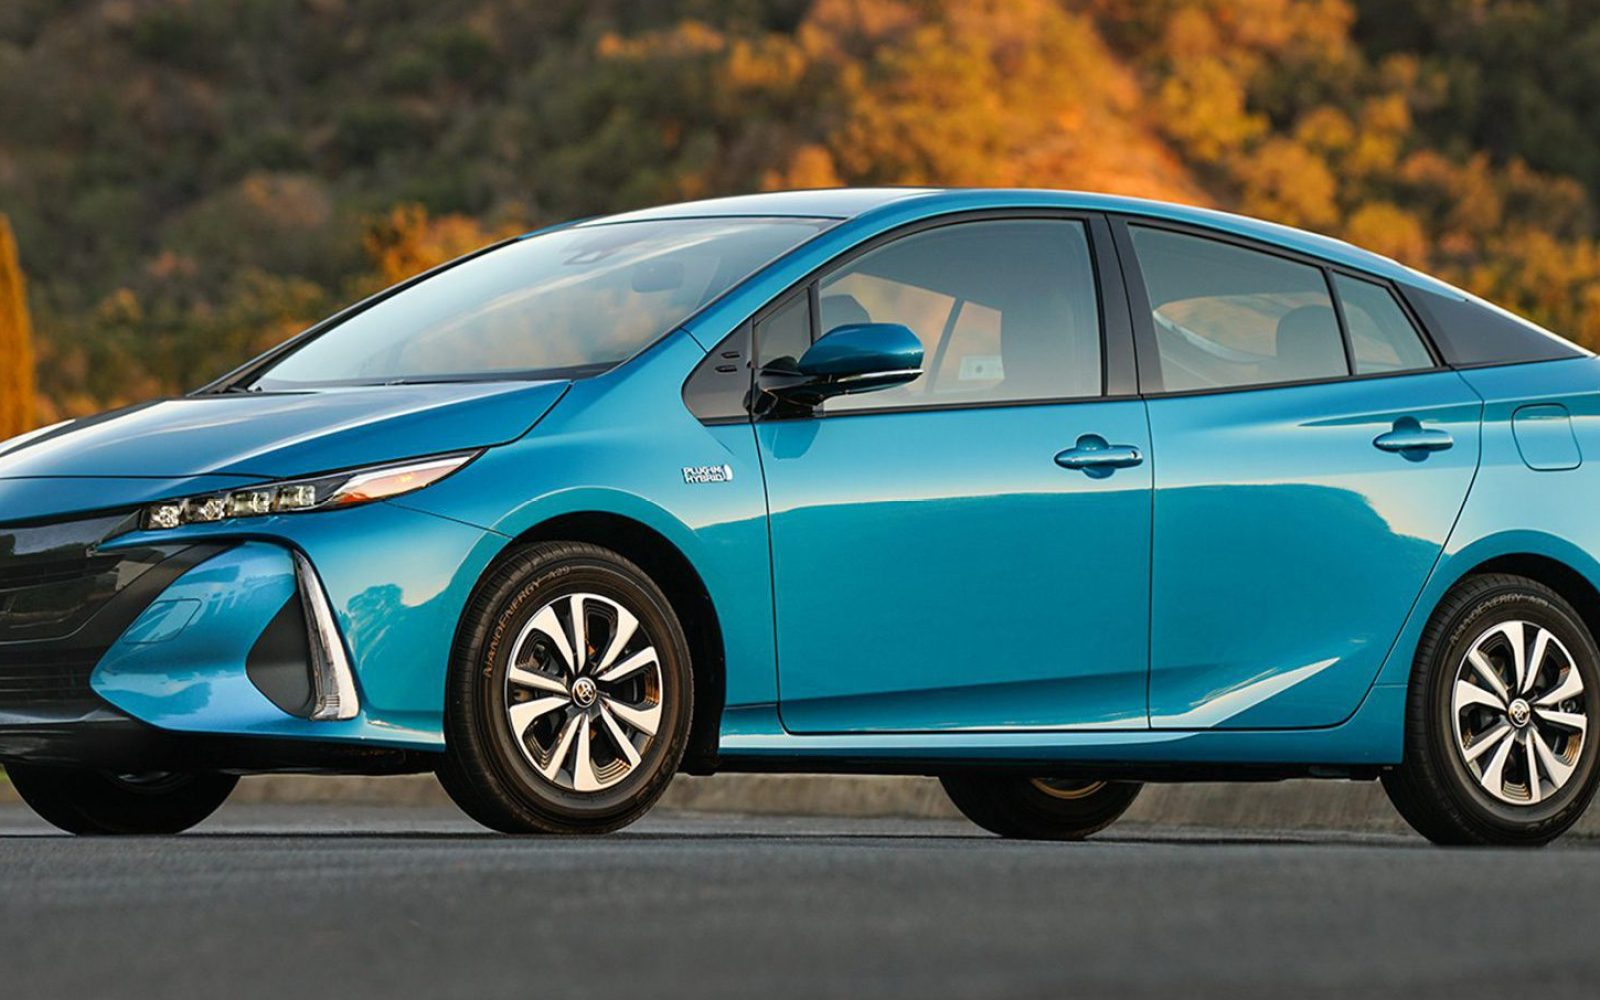 Toyota is planning long-range battery-powered electric cars